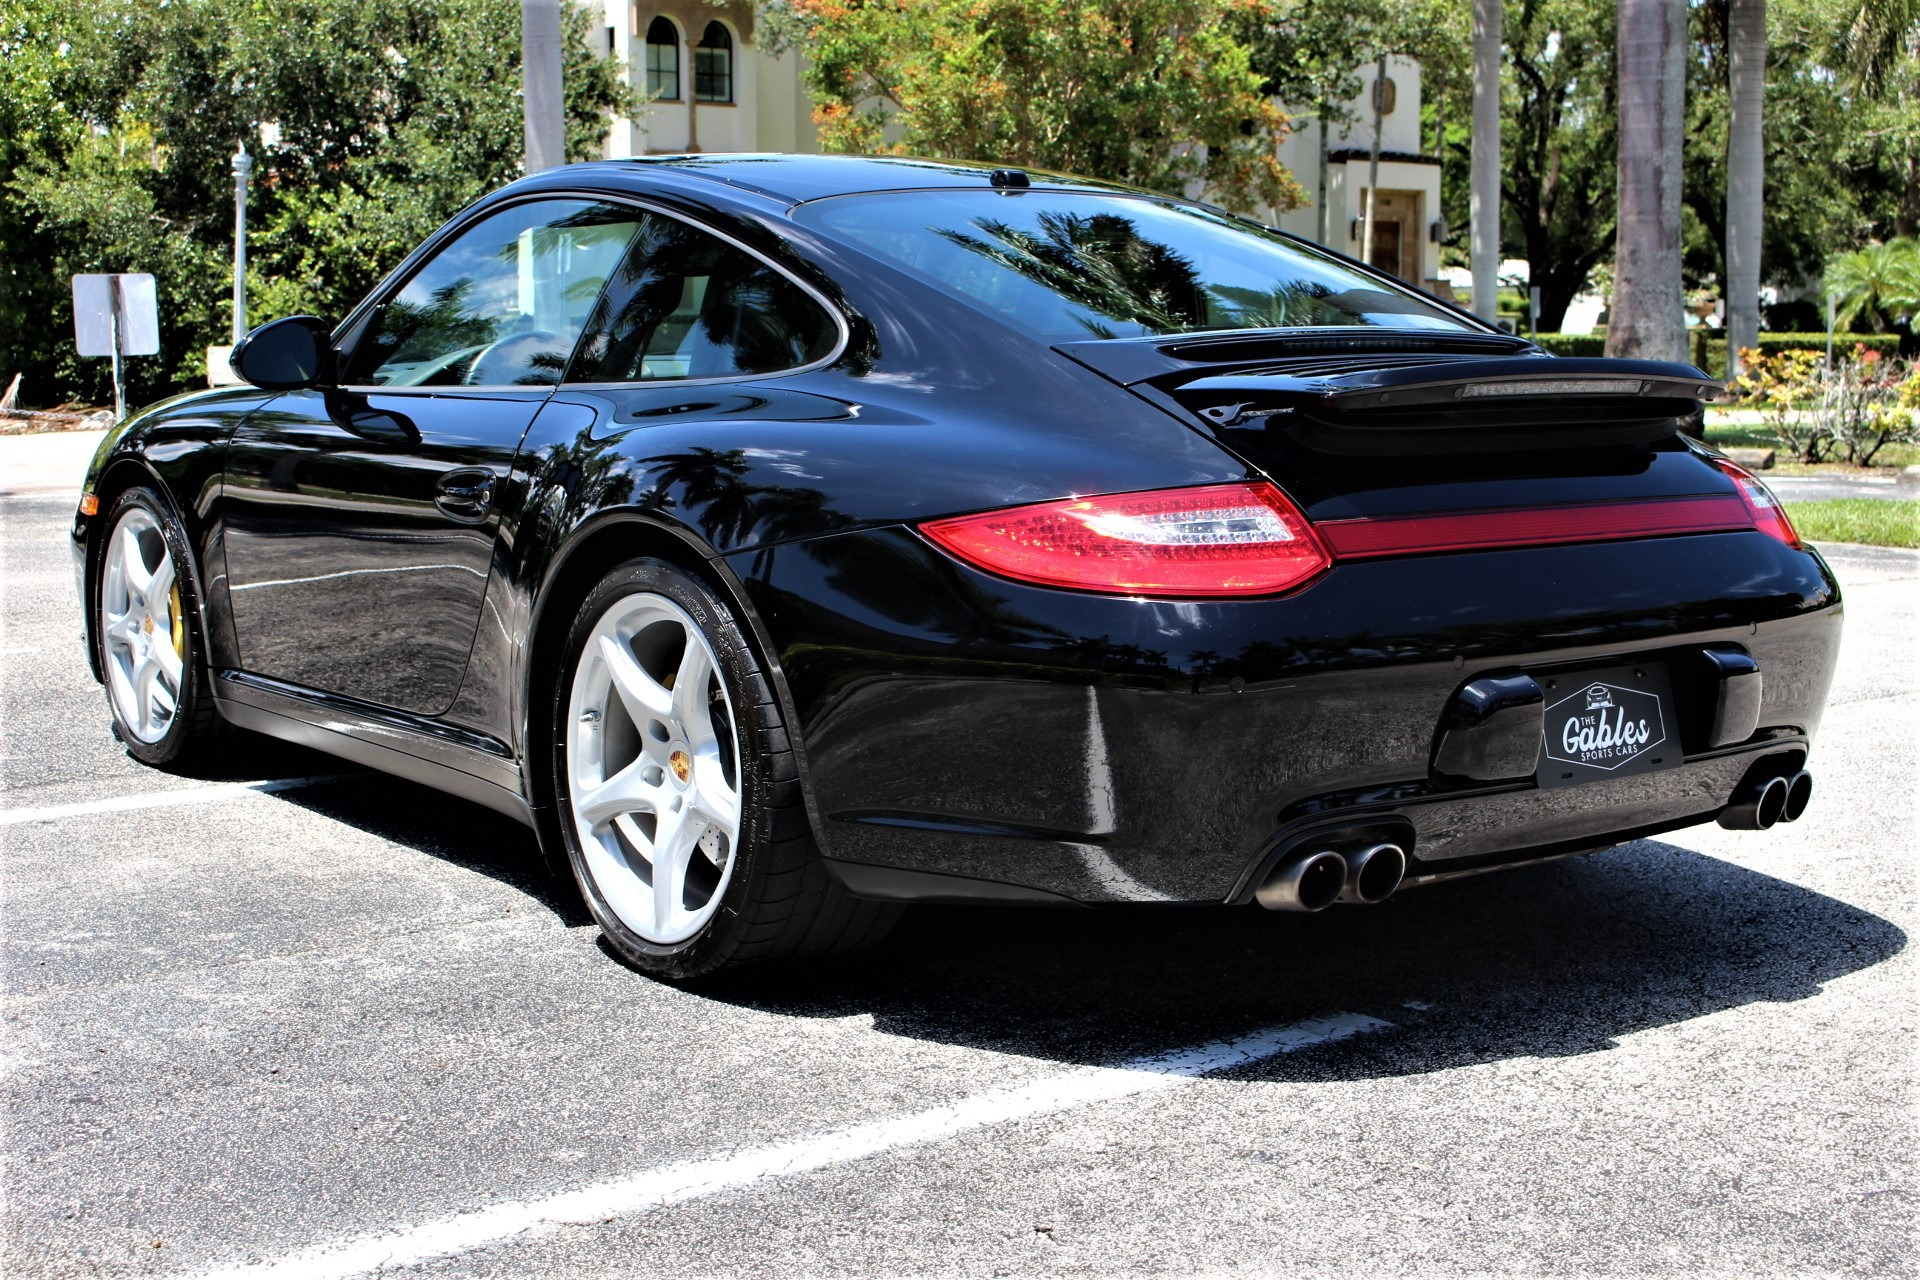 Used 2009 Porsche 911 Carrera 4S for sale Sold at The Gables Sports Cars in Miami FL 33146 1